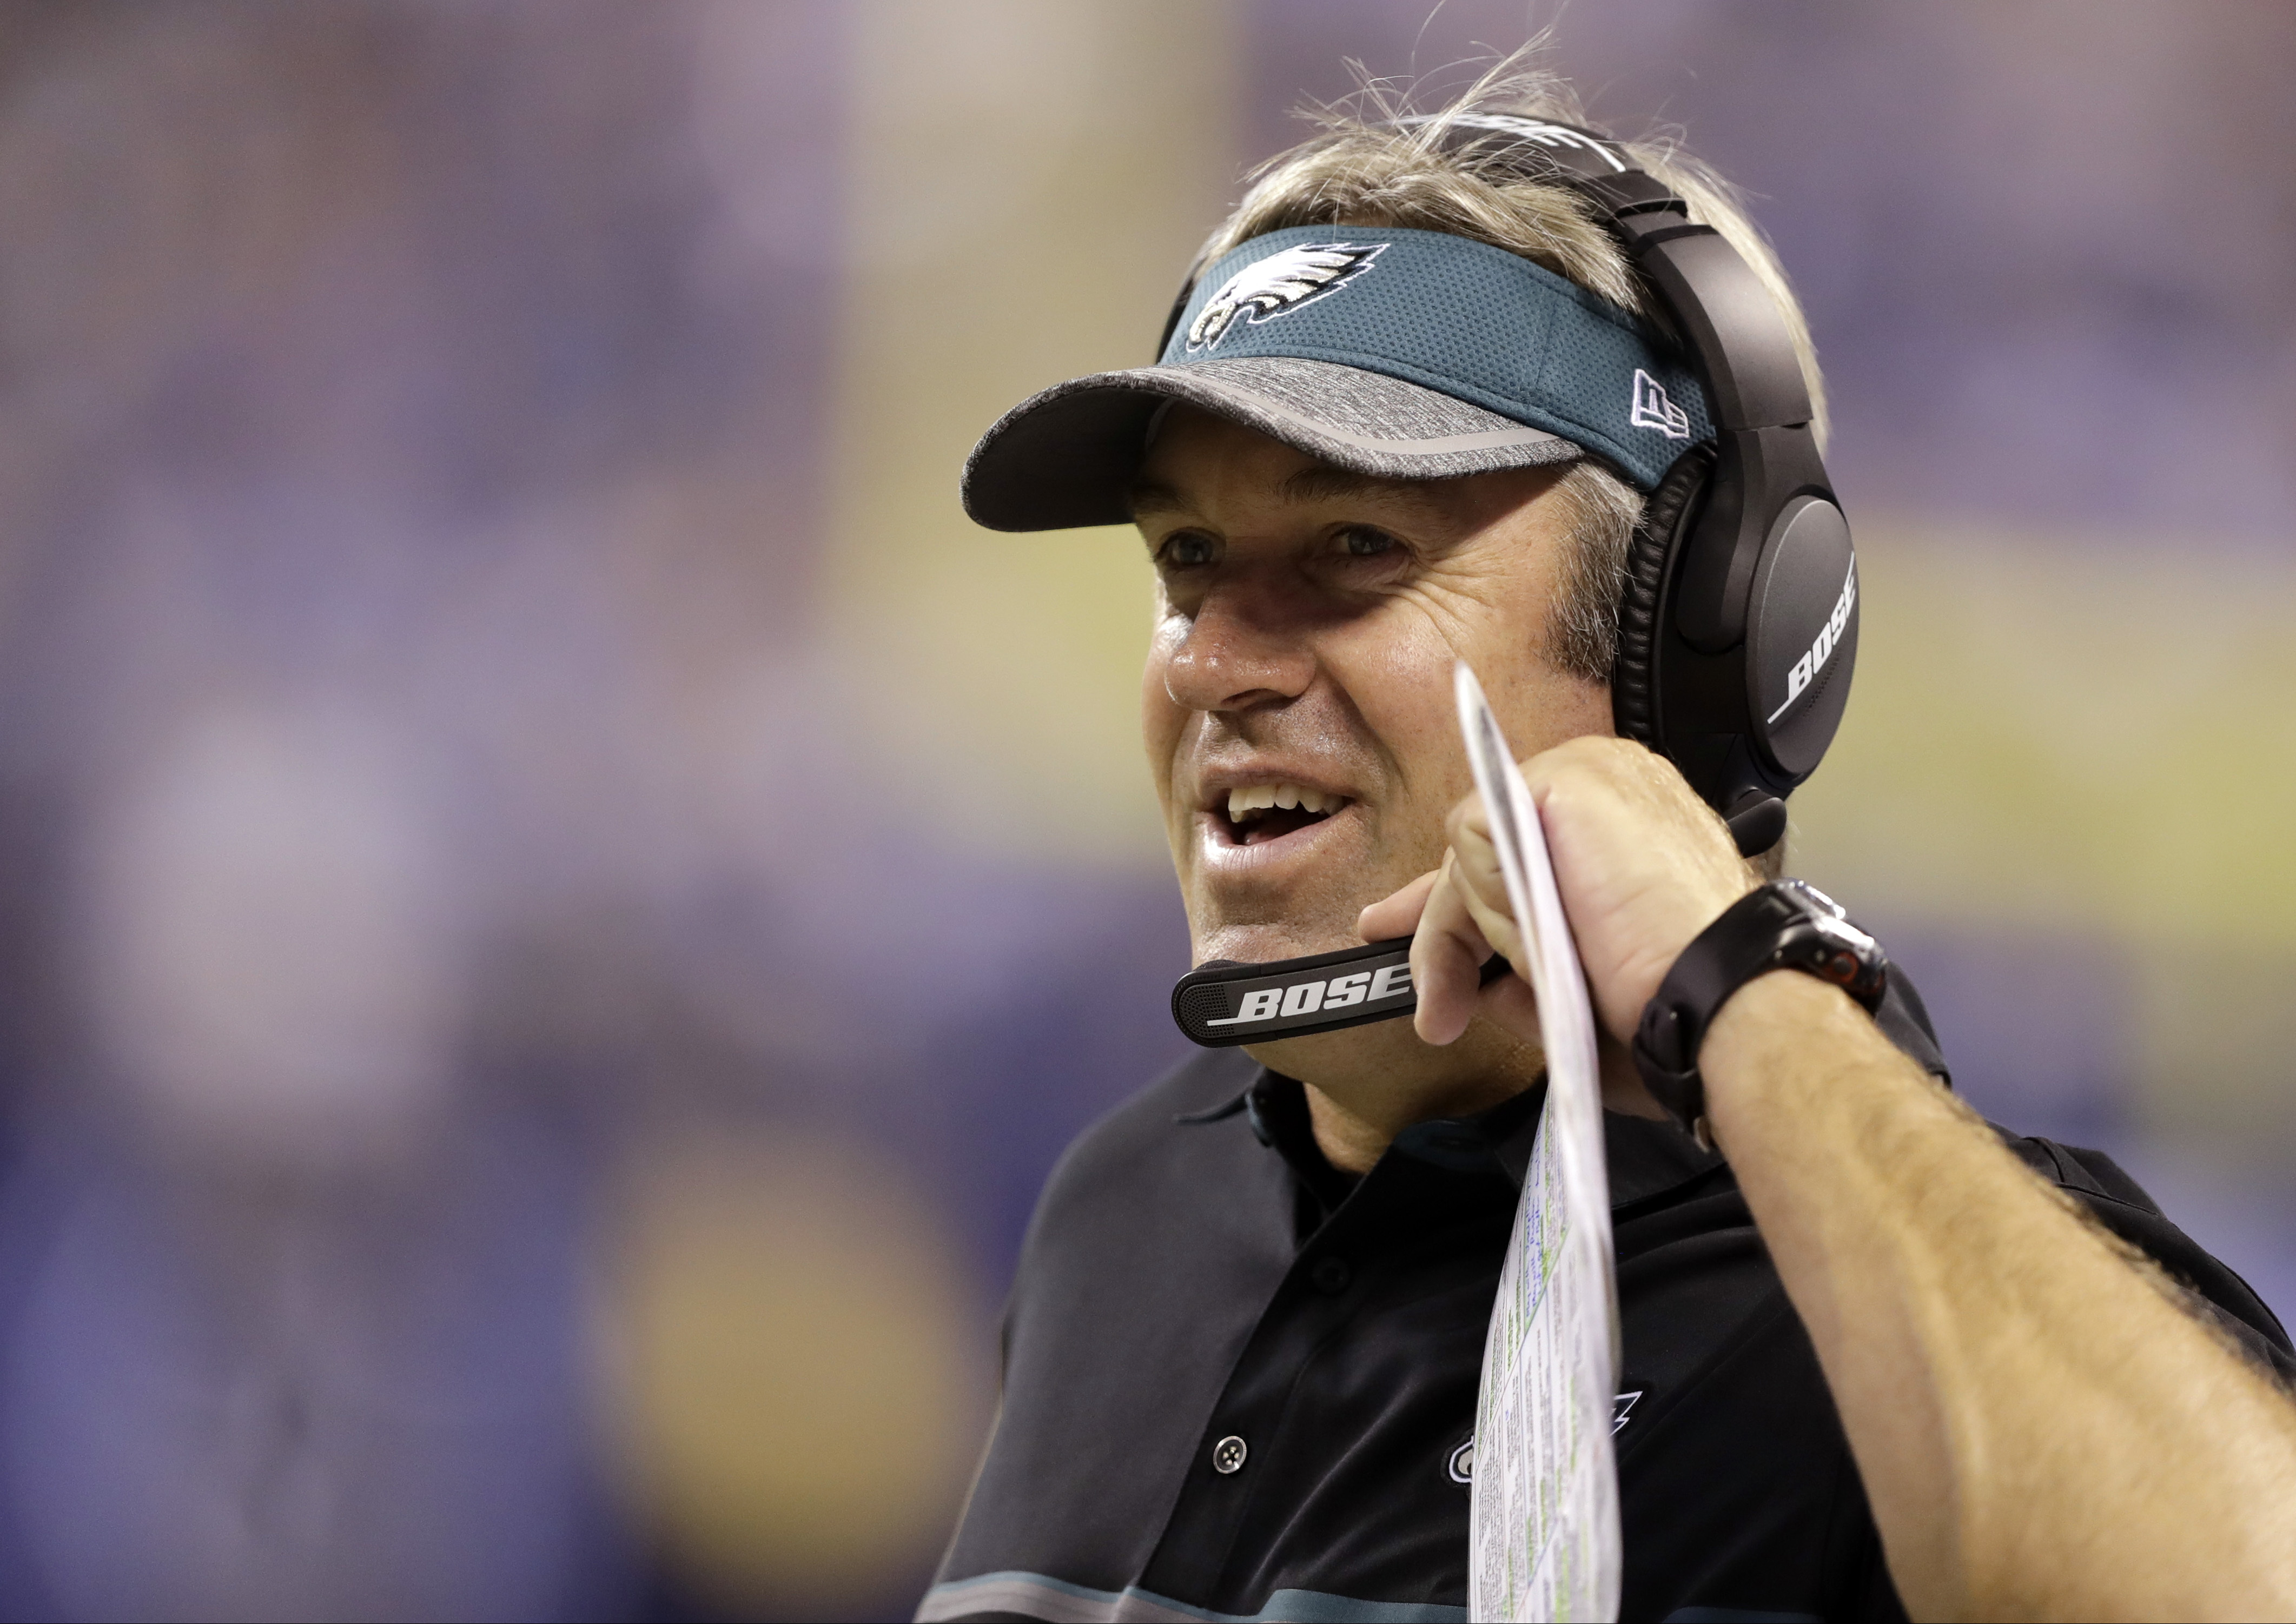 FILE - In this Aug. 27, 2016, file photo, Philadelphia Eagles head coach Doug Pederson smiles on the sideline during the first half of an NFL preseason football game against the Indianapolis Colts in Indianapolis. Carson Wentz and the unbeaten Eagles were